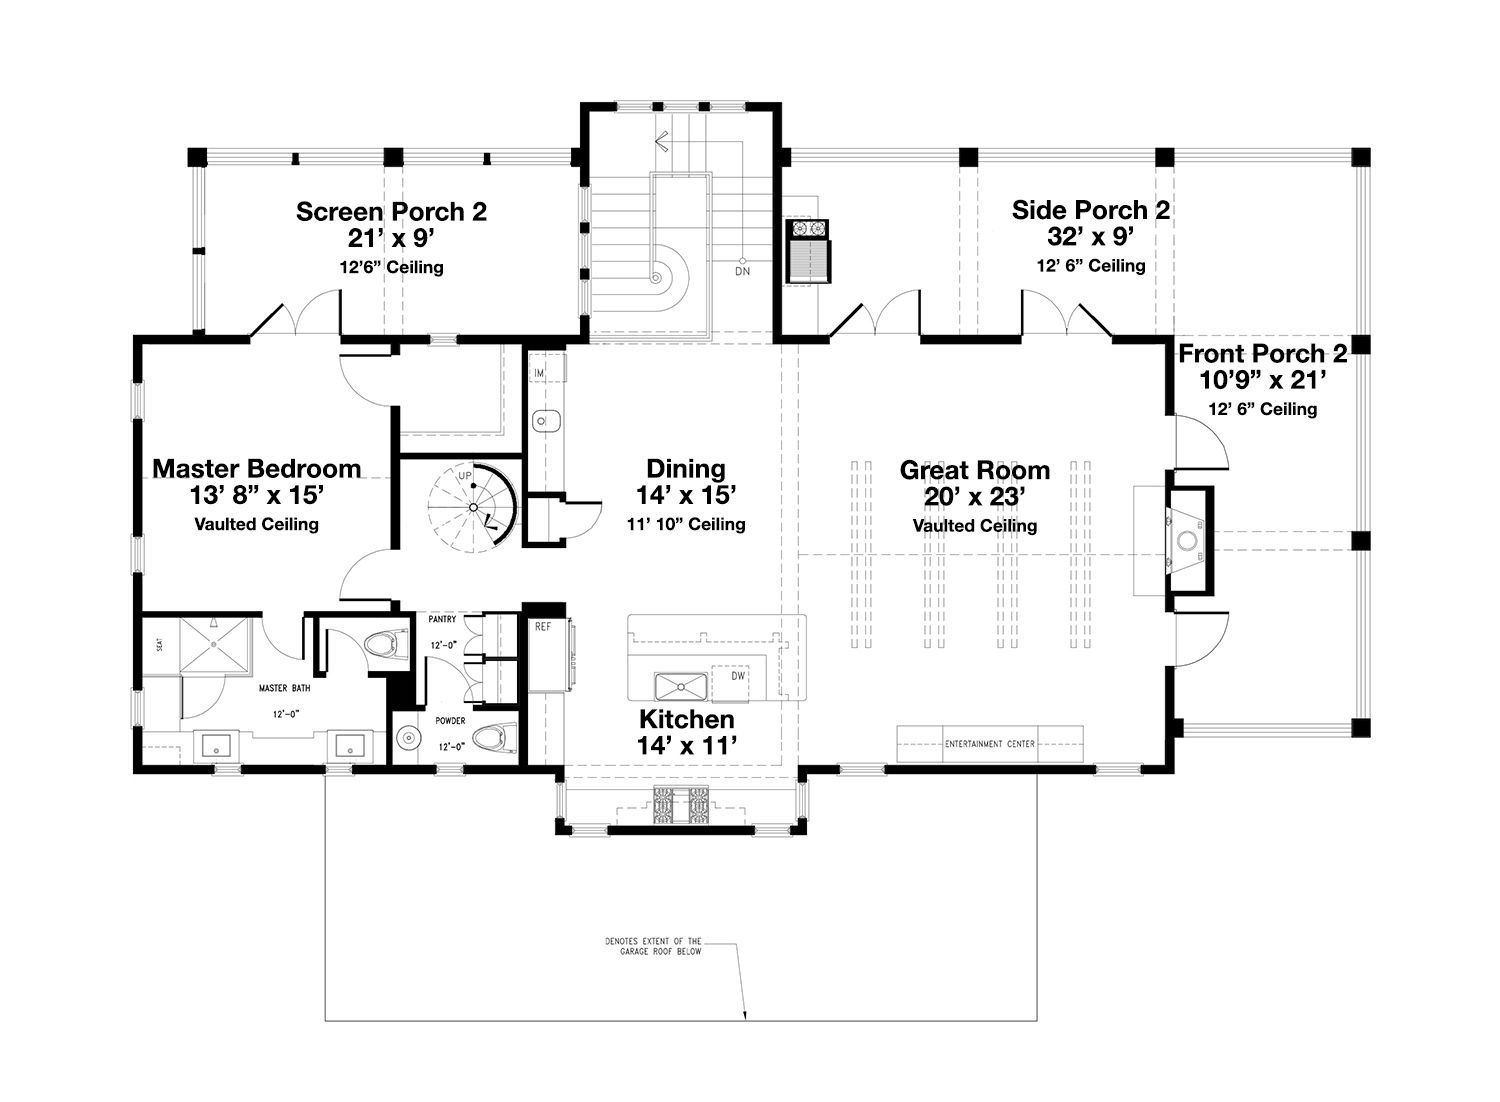 beach style house plan by geoff chick 4 beds 4 5 baths 2728 sq this beach design floor plan is 2728 sq ft and has 4 bedrooms and has bathrooms